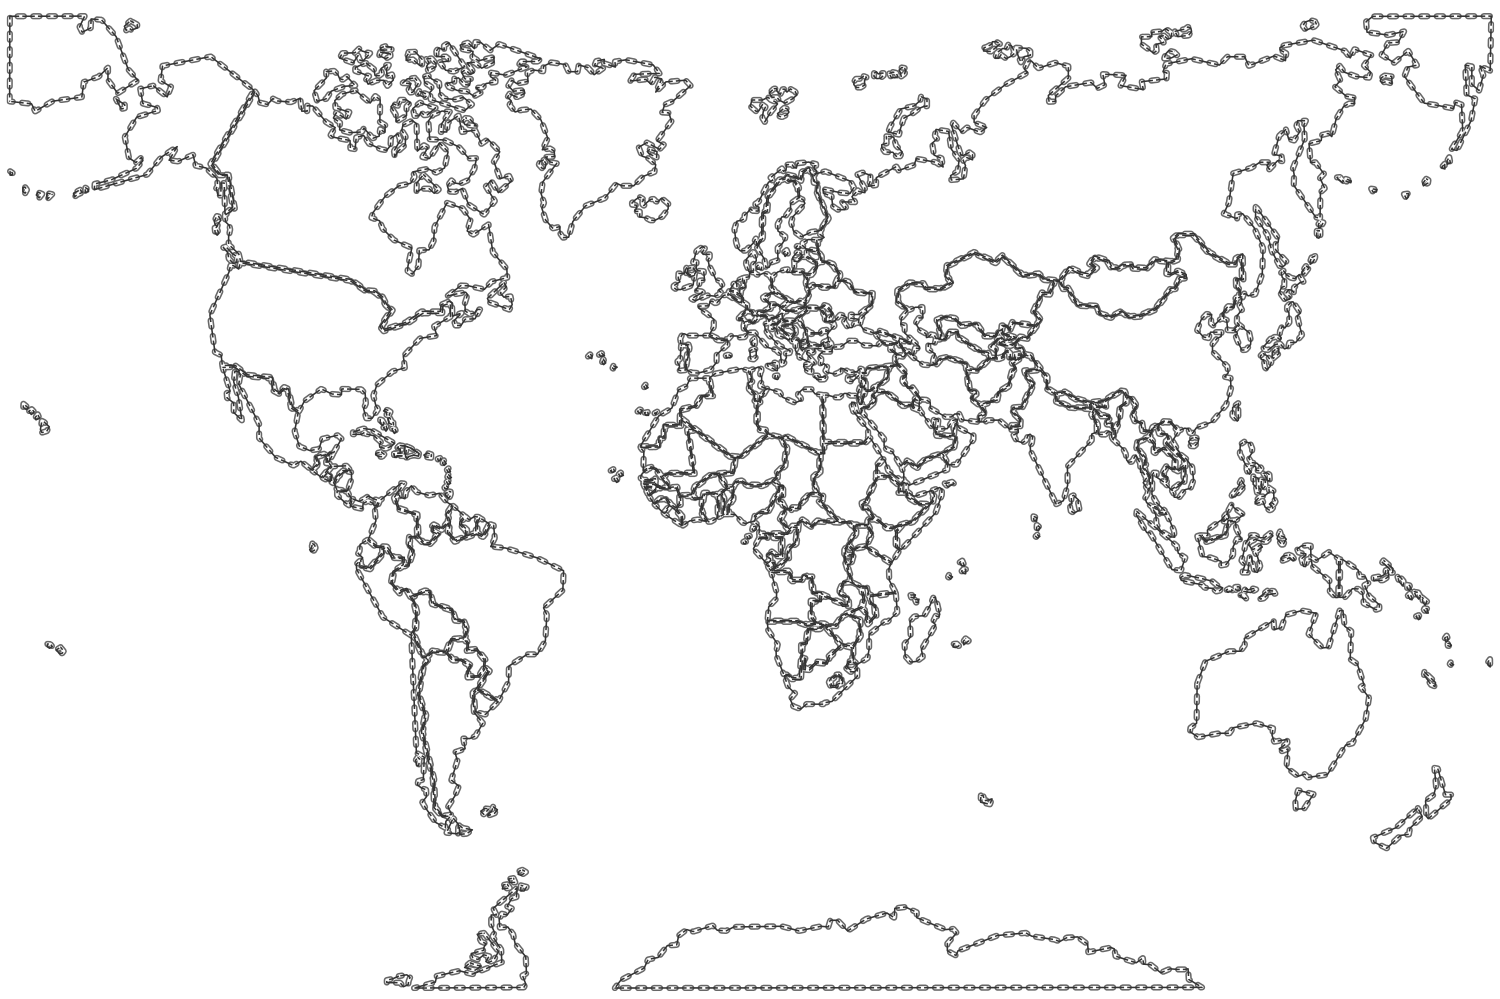 World map drawing at getdrawings free for personal use world 1500x999 drawing a world map map of spain in europe volvo 240 wiring diagrams gumiabroncs Gallery